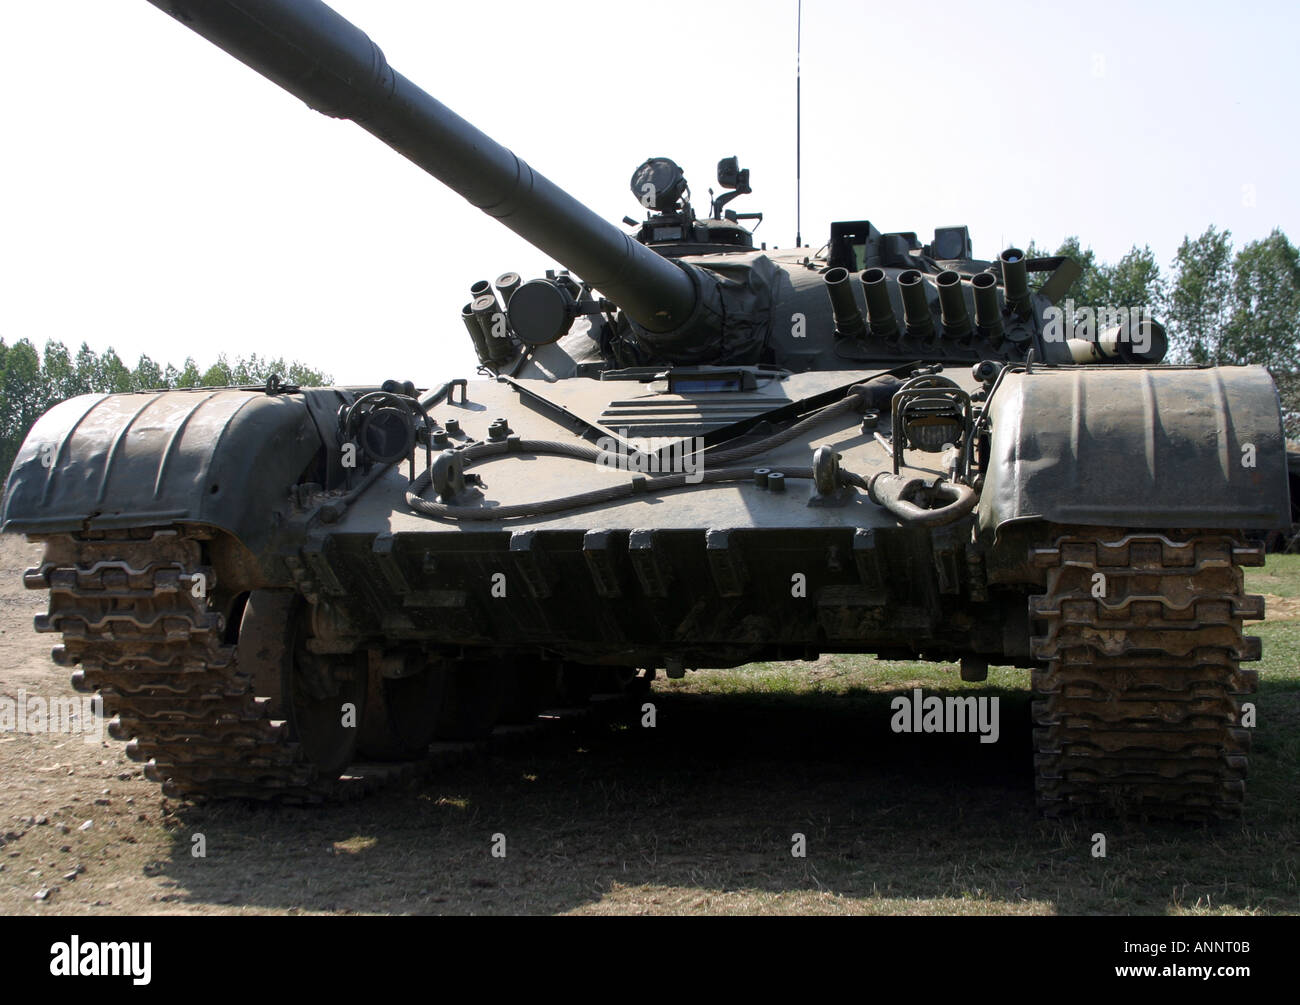 Russian army tank landscape - Stock Image